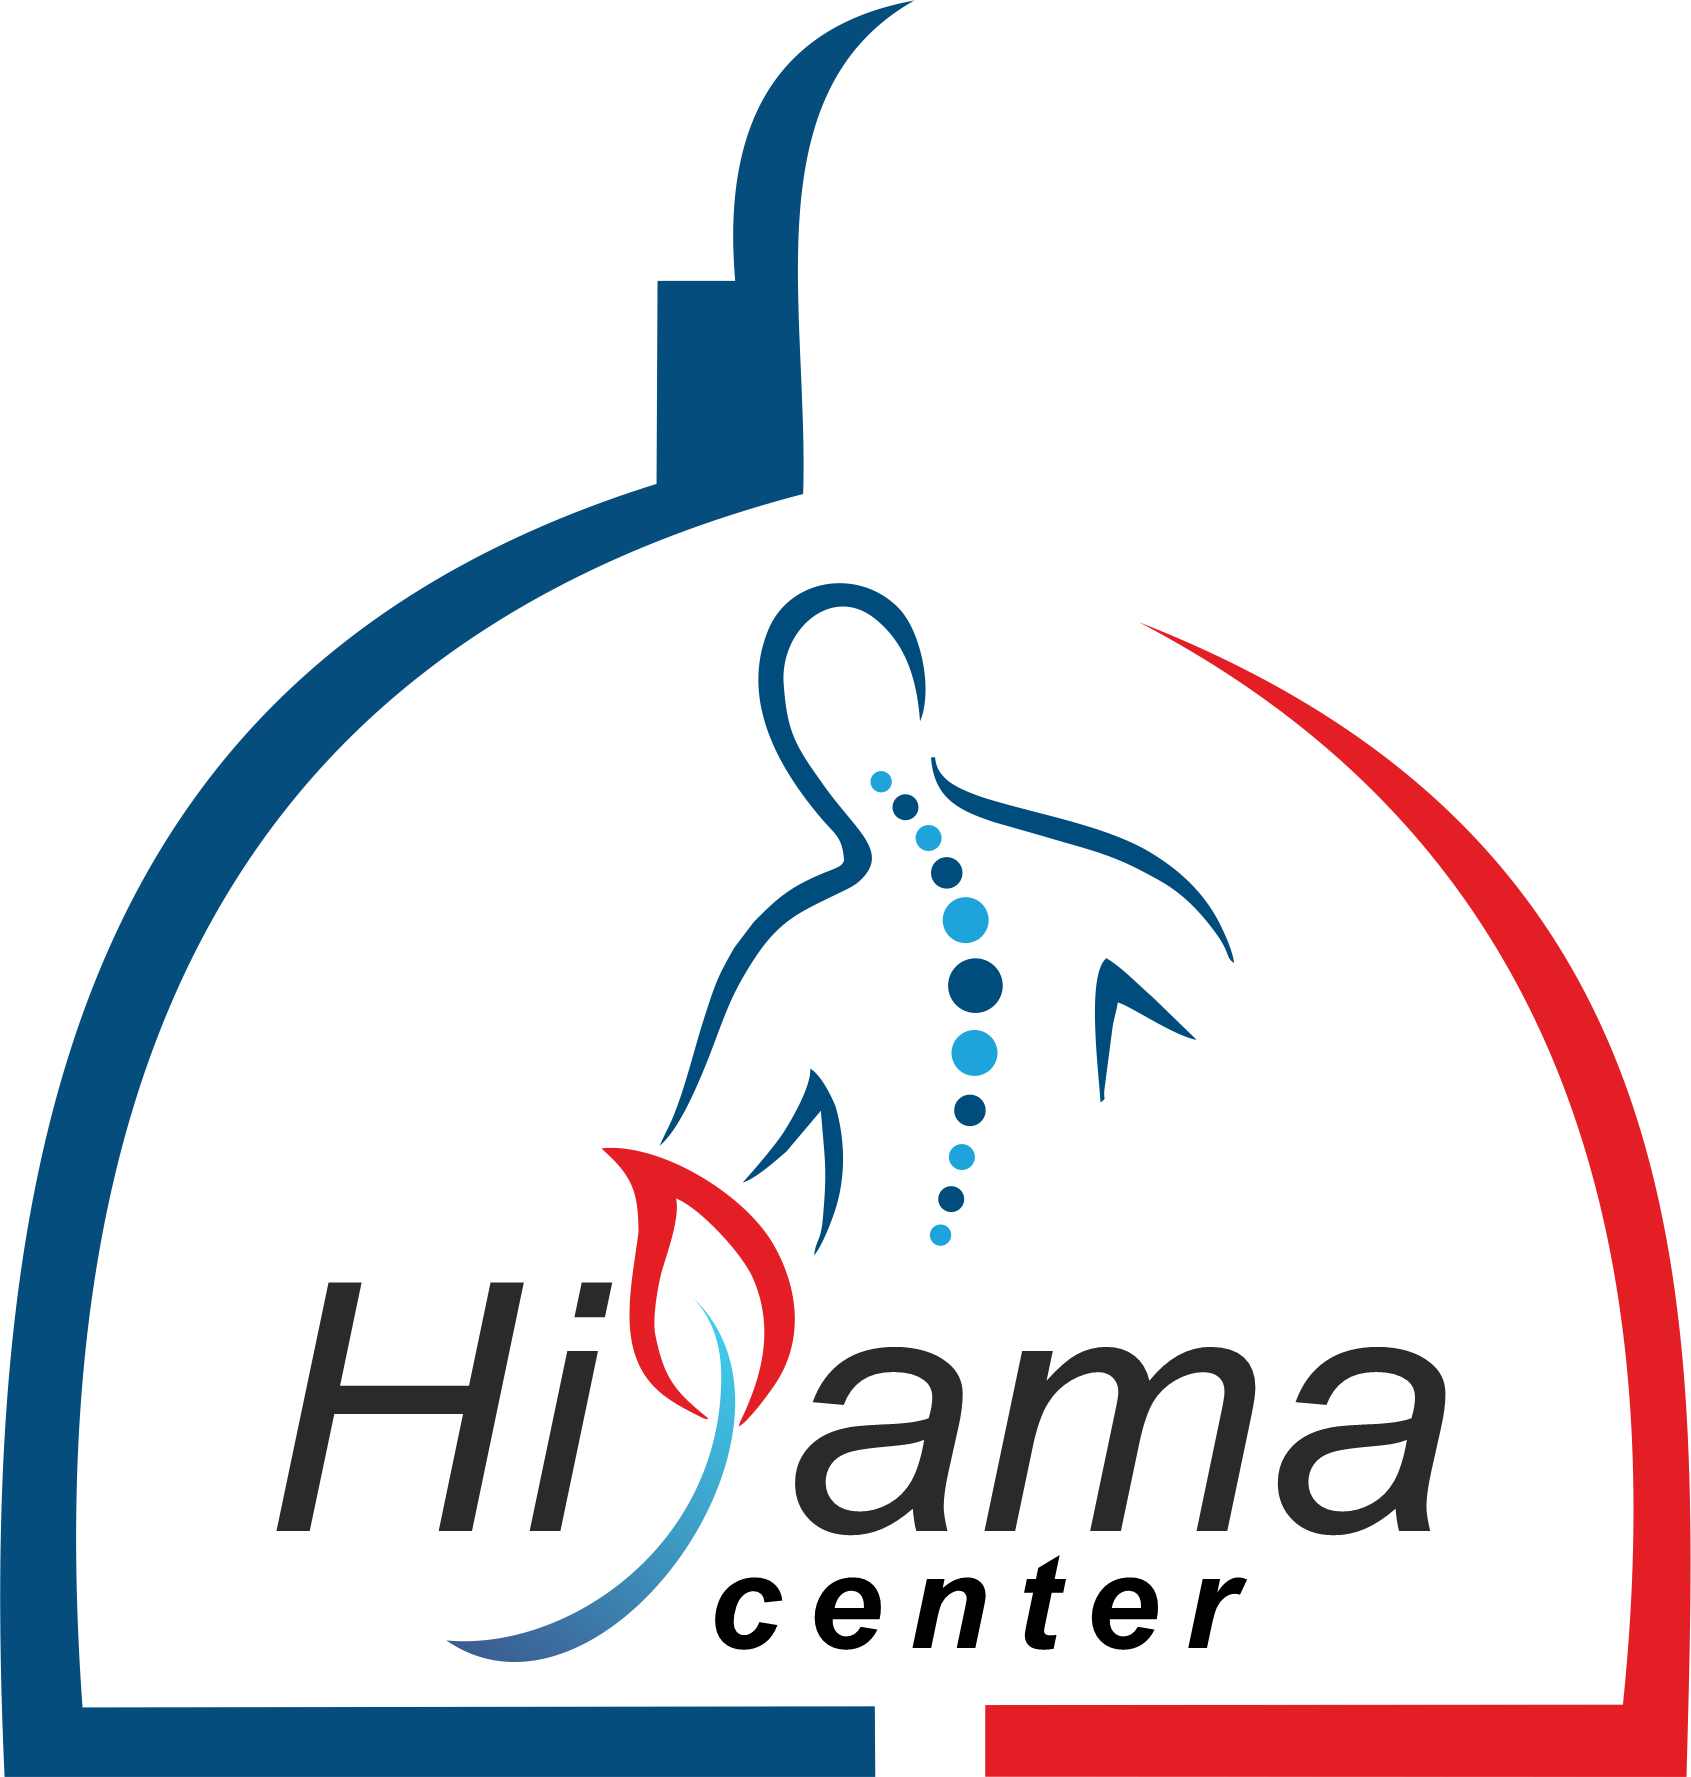 Hijamacenter